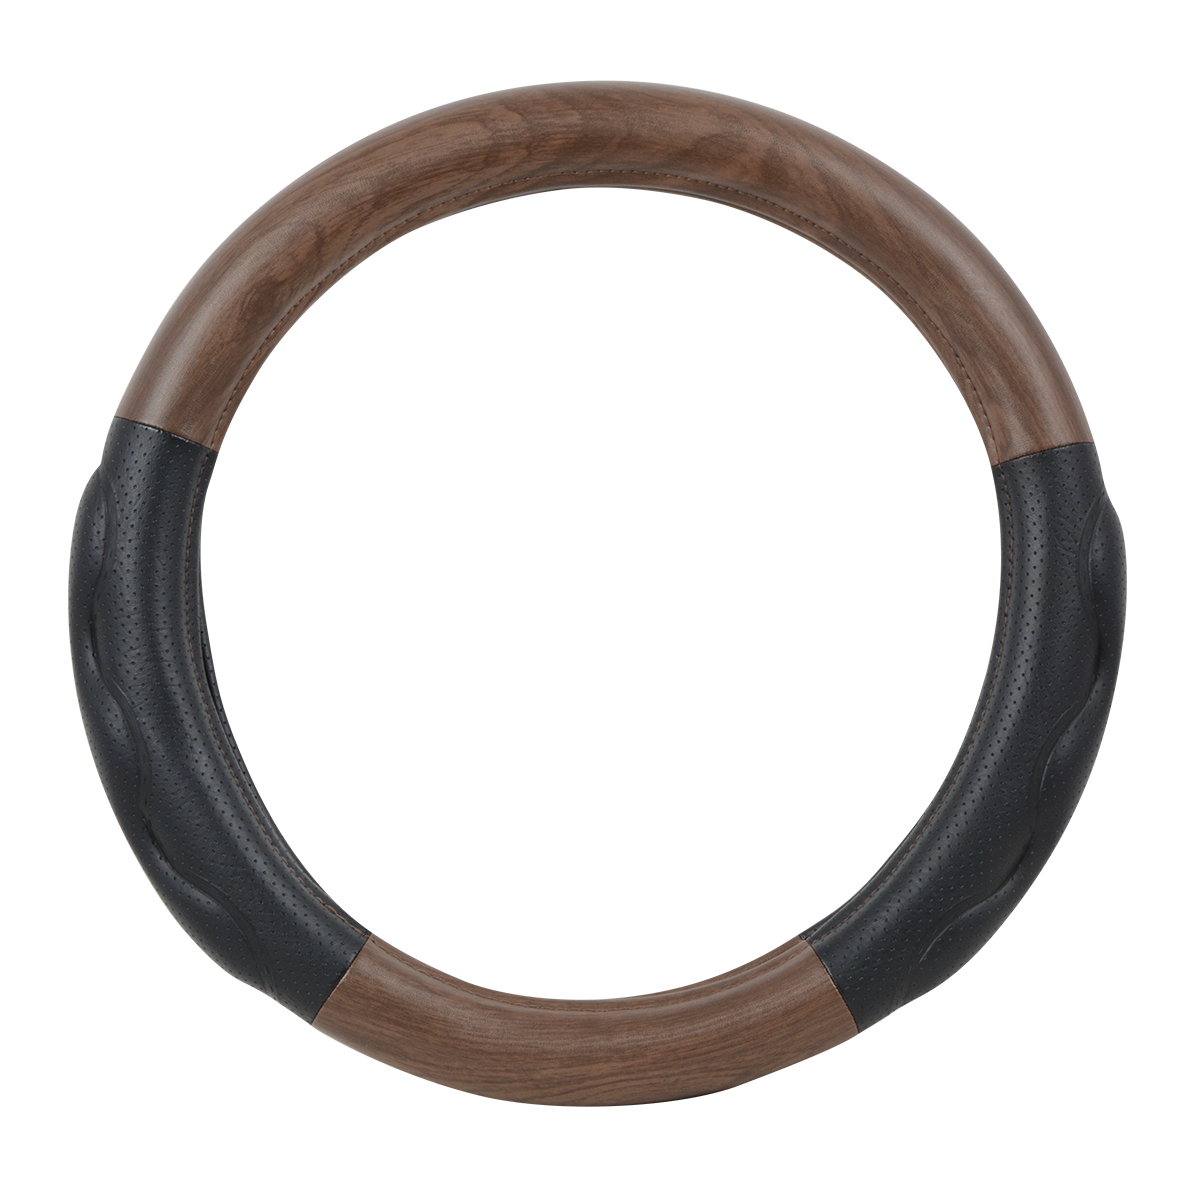 "54057 Heavy Duty 18"" Steering Wheel Cover in Deluxe+ Matte Natural Wood"